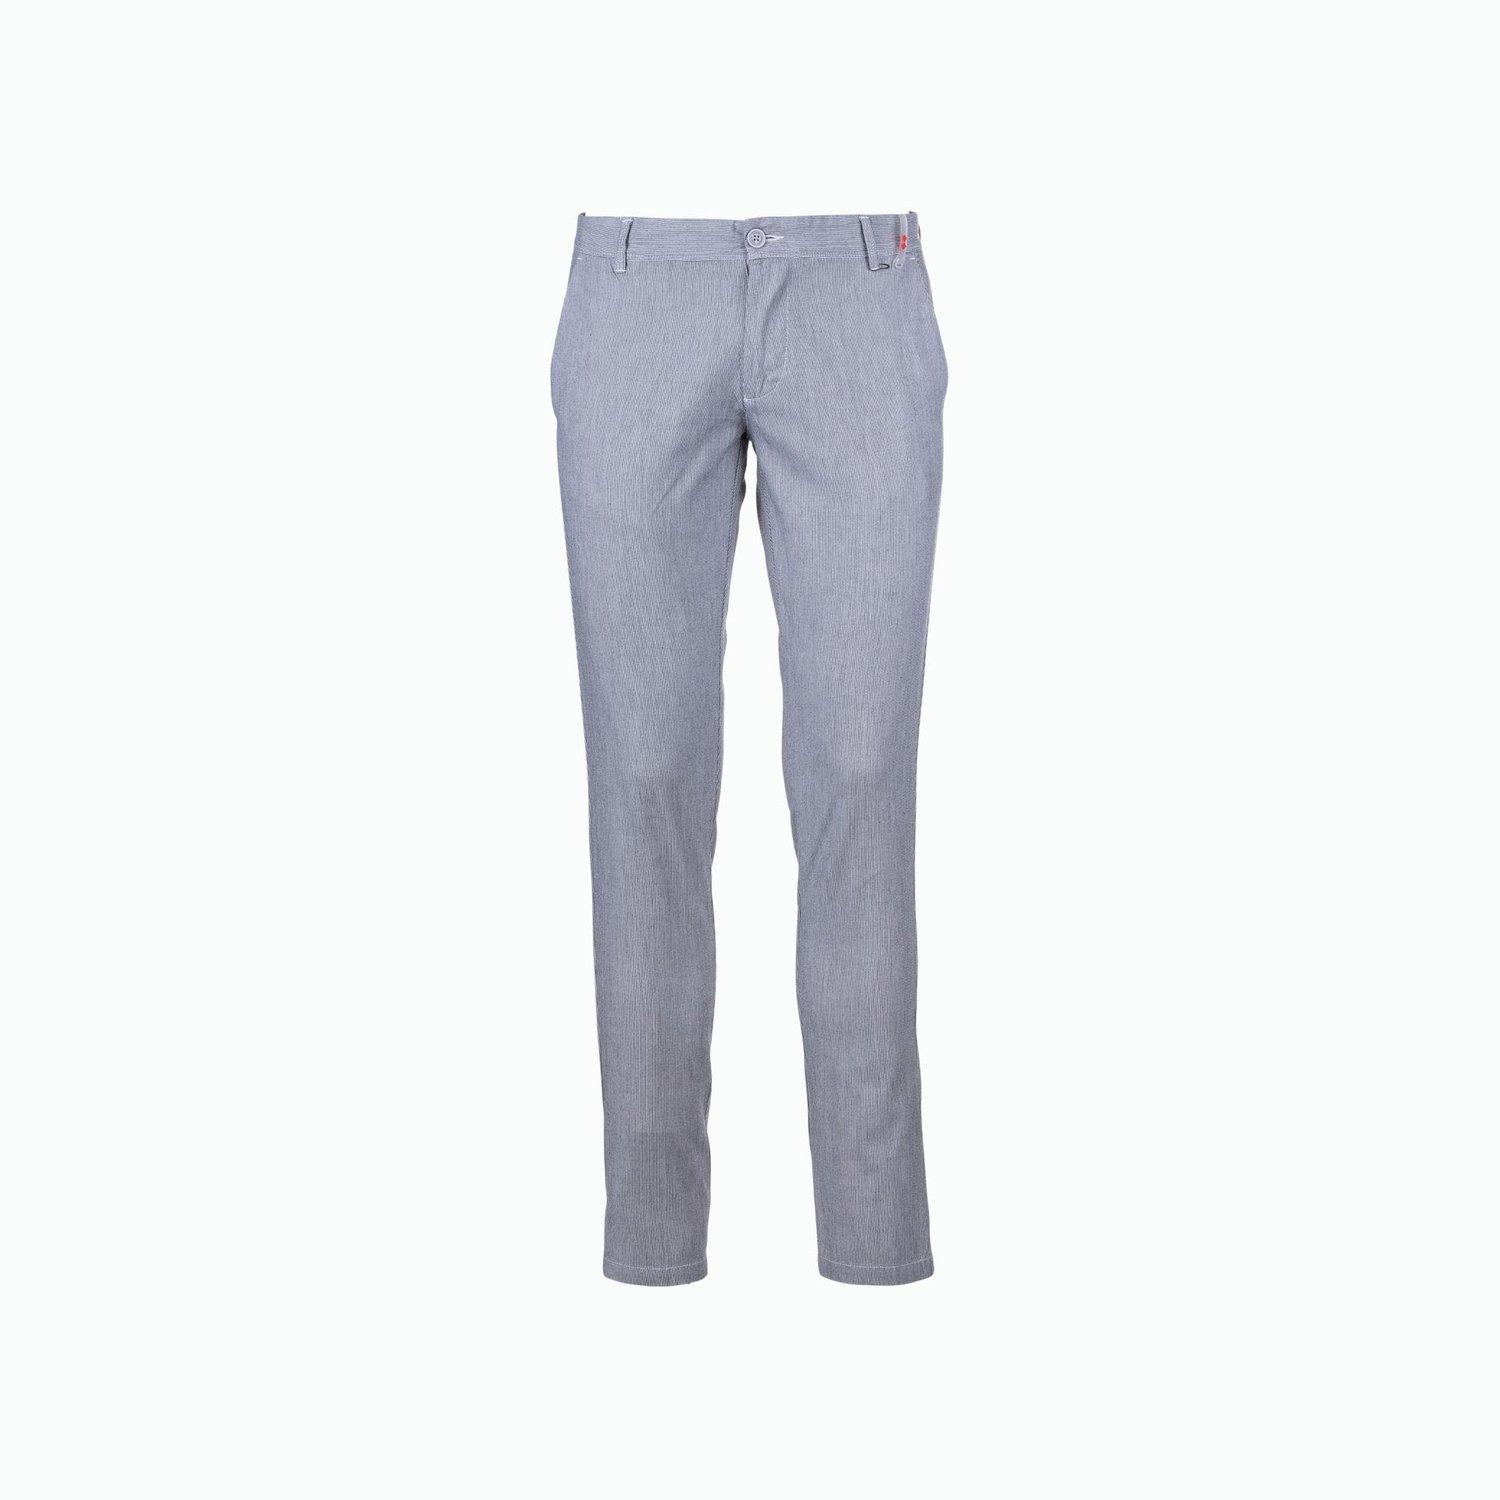 C55 Trousers - Navy / White